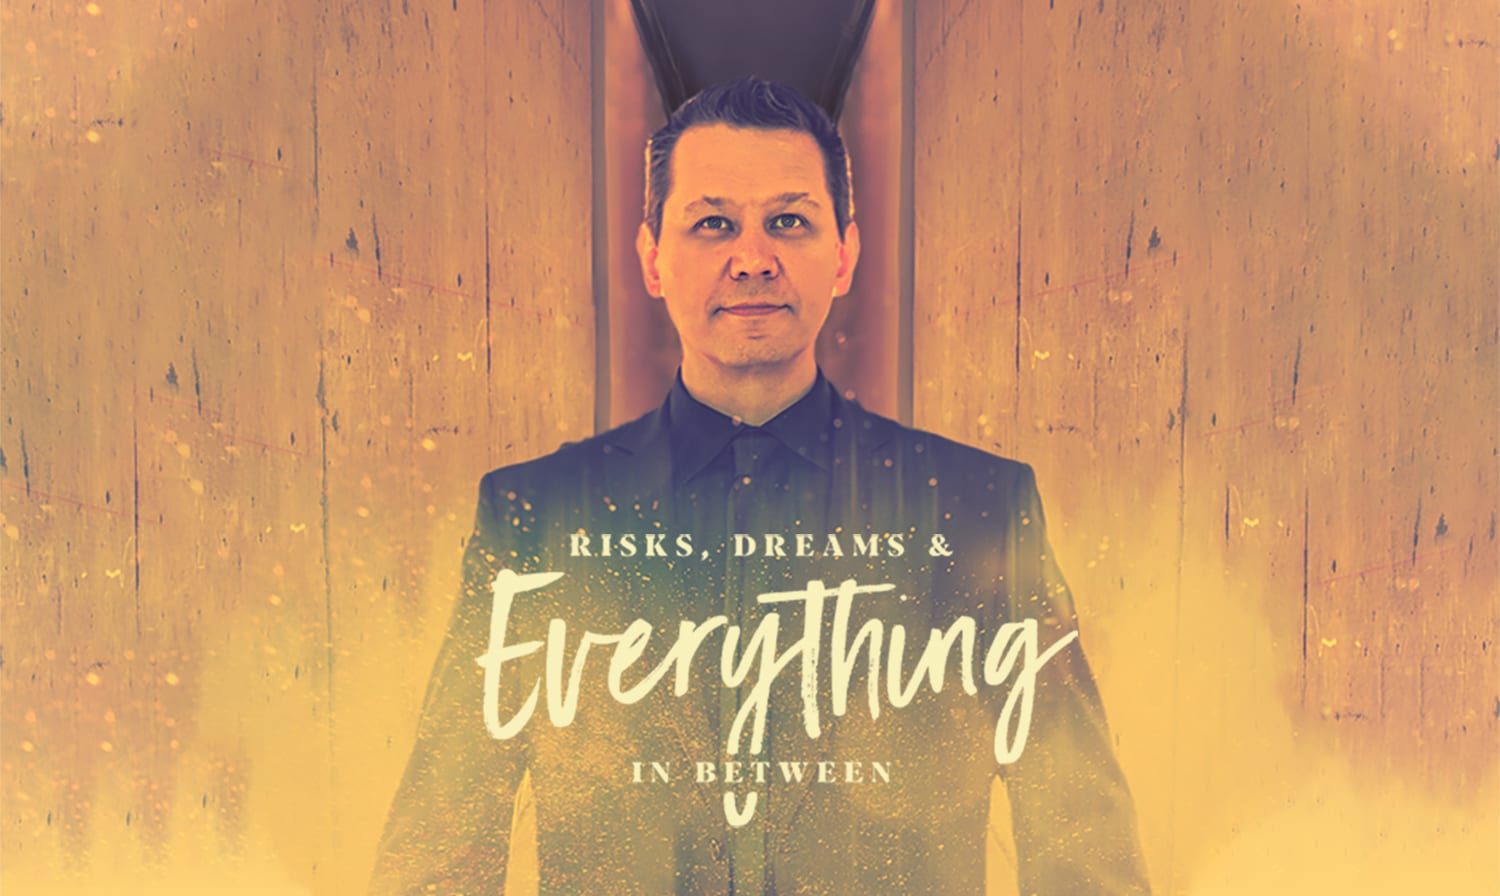 Derek Selinger, Corporate Speaker, Risks, Dreams and Everything in Between